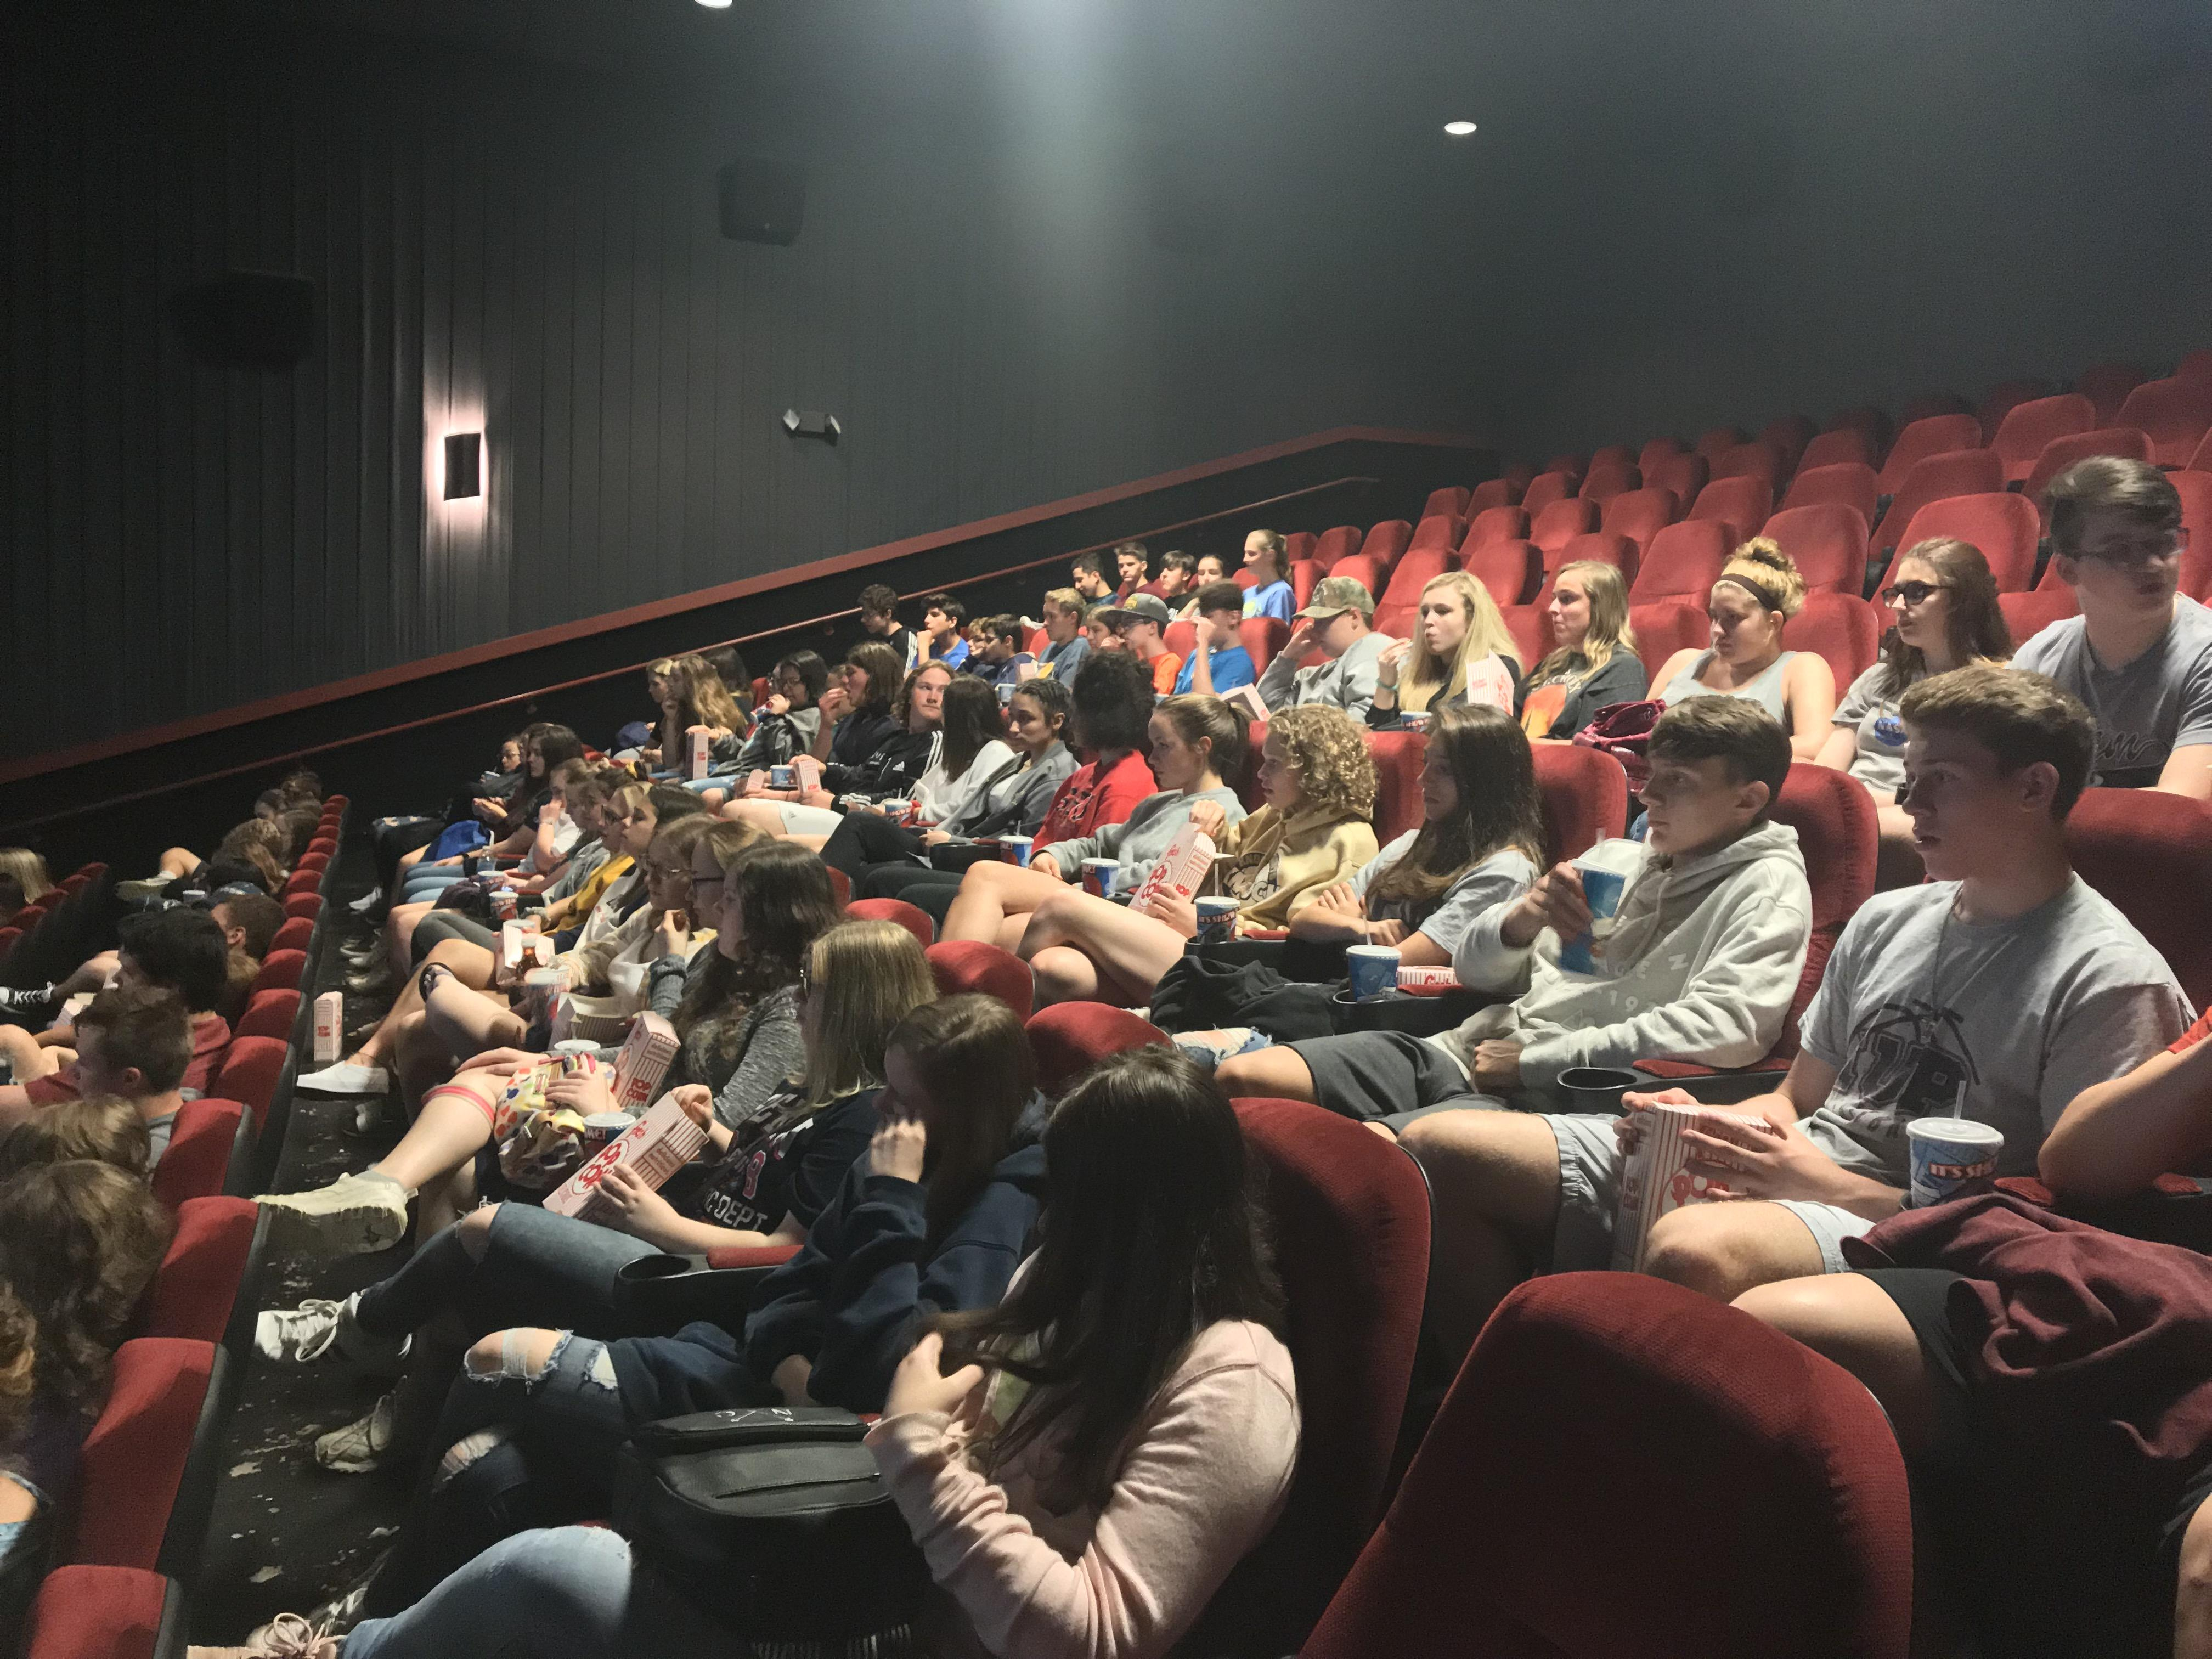 Picture of Freshmen at movie theater